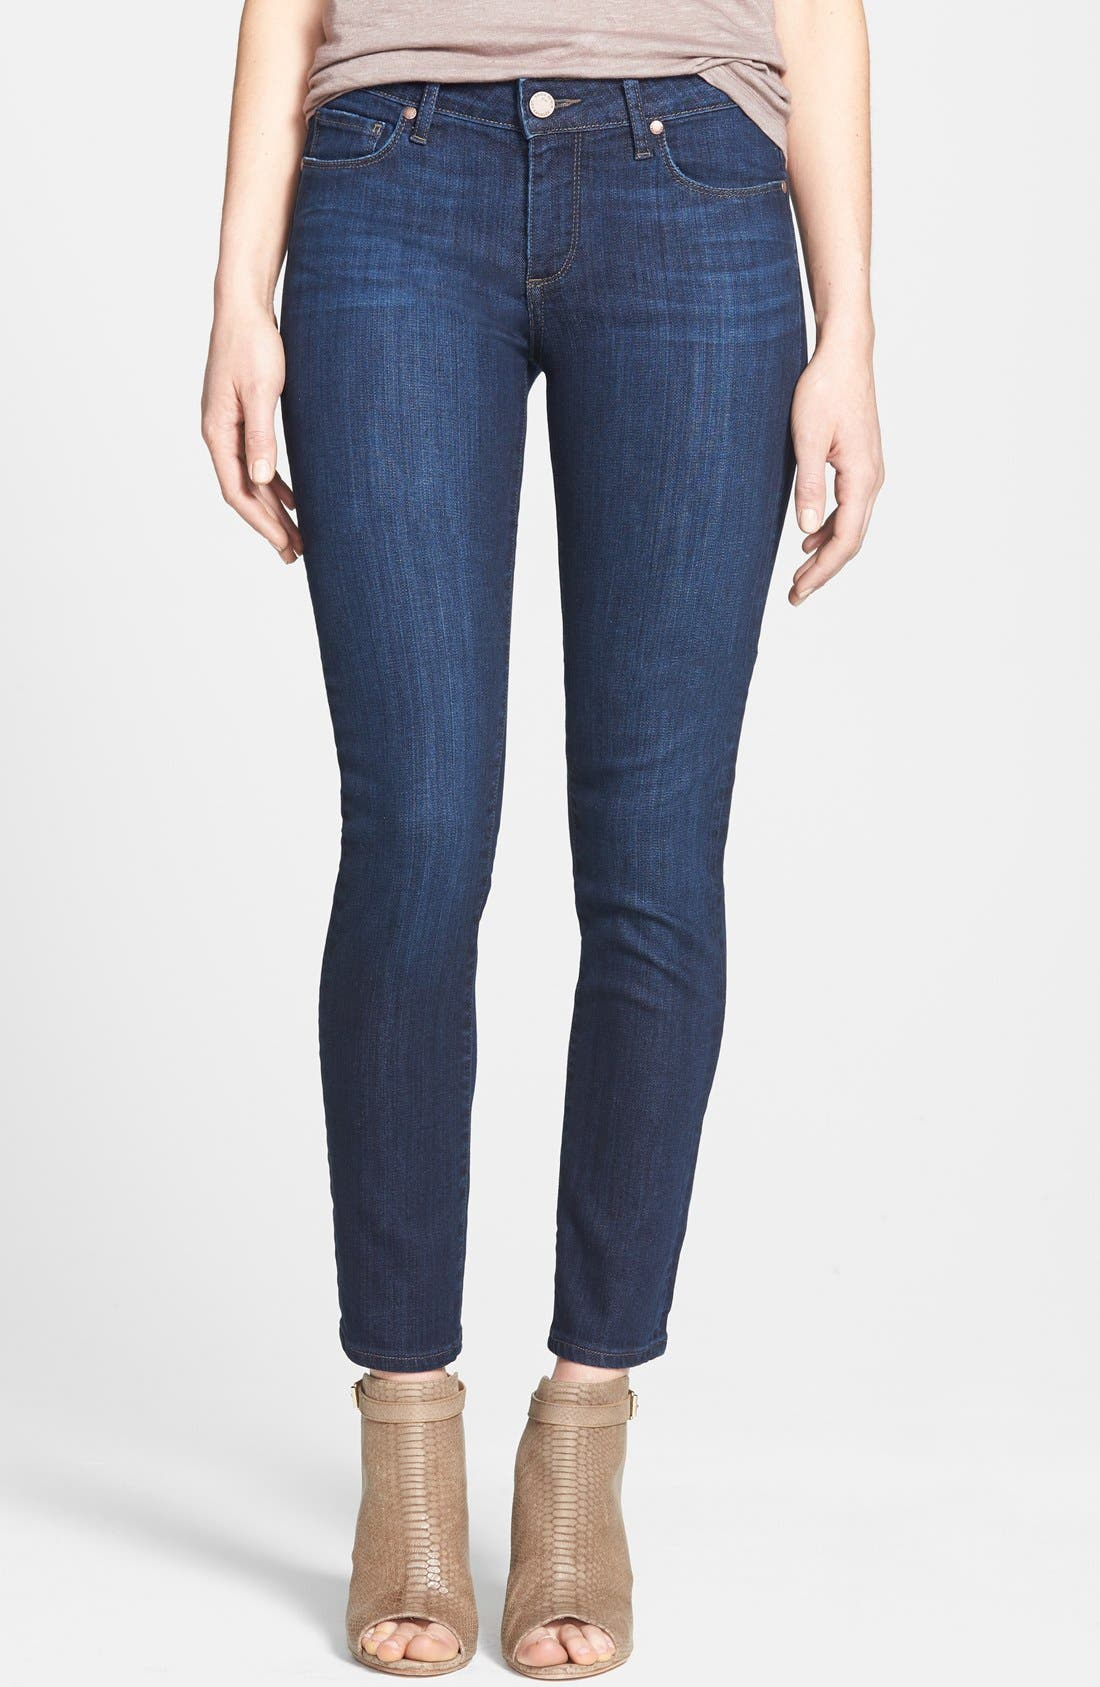 Alternate Image 1 Selected - Paige Denim 'Skyline' Ankle Peg Skinny Jeans (Dixie) (Nordstrom Exclusive)